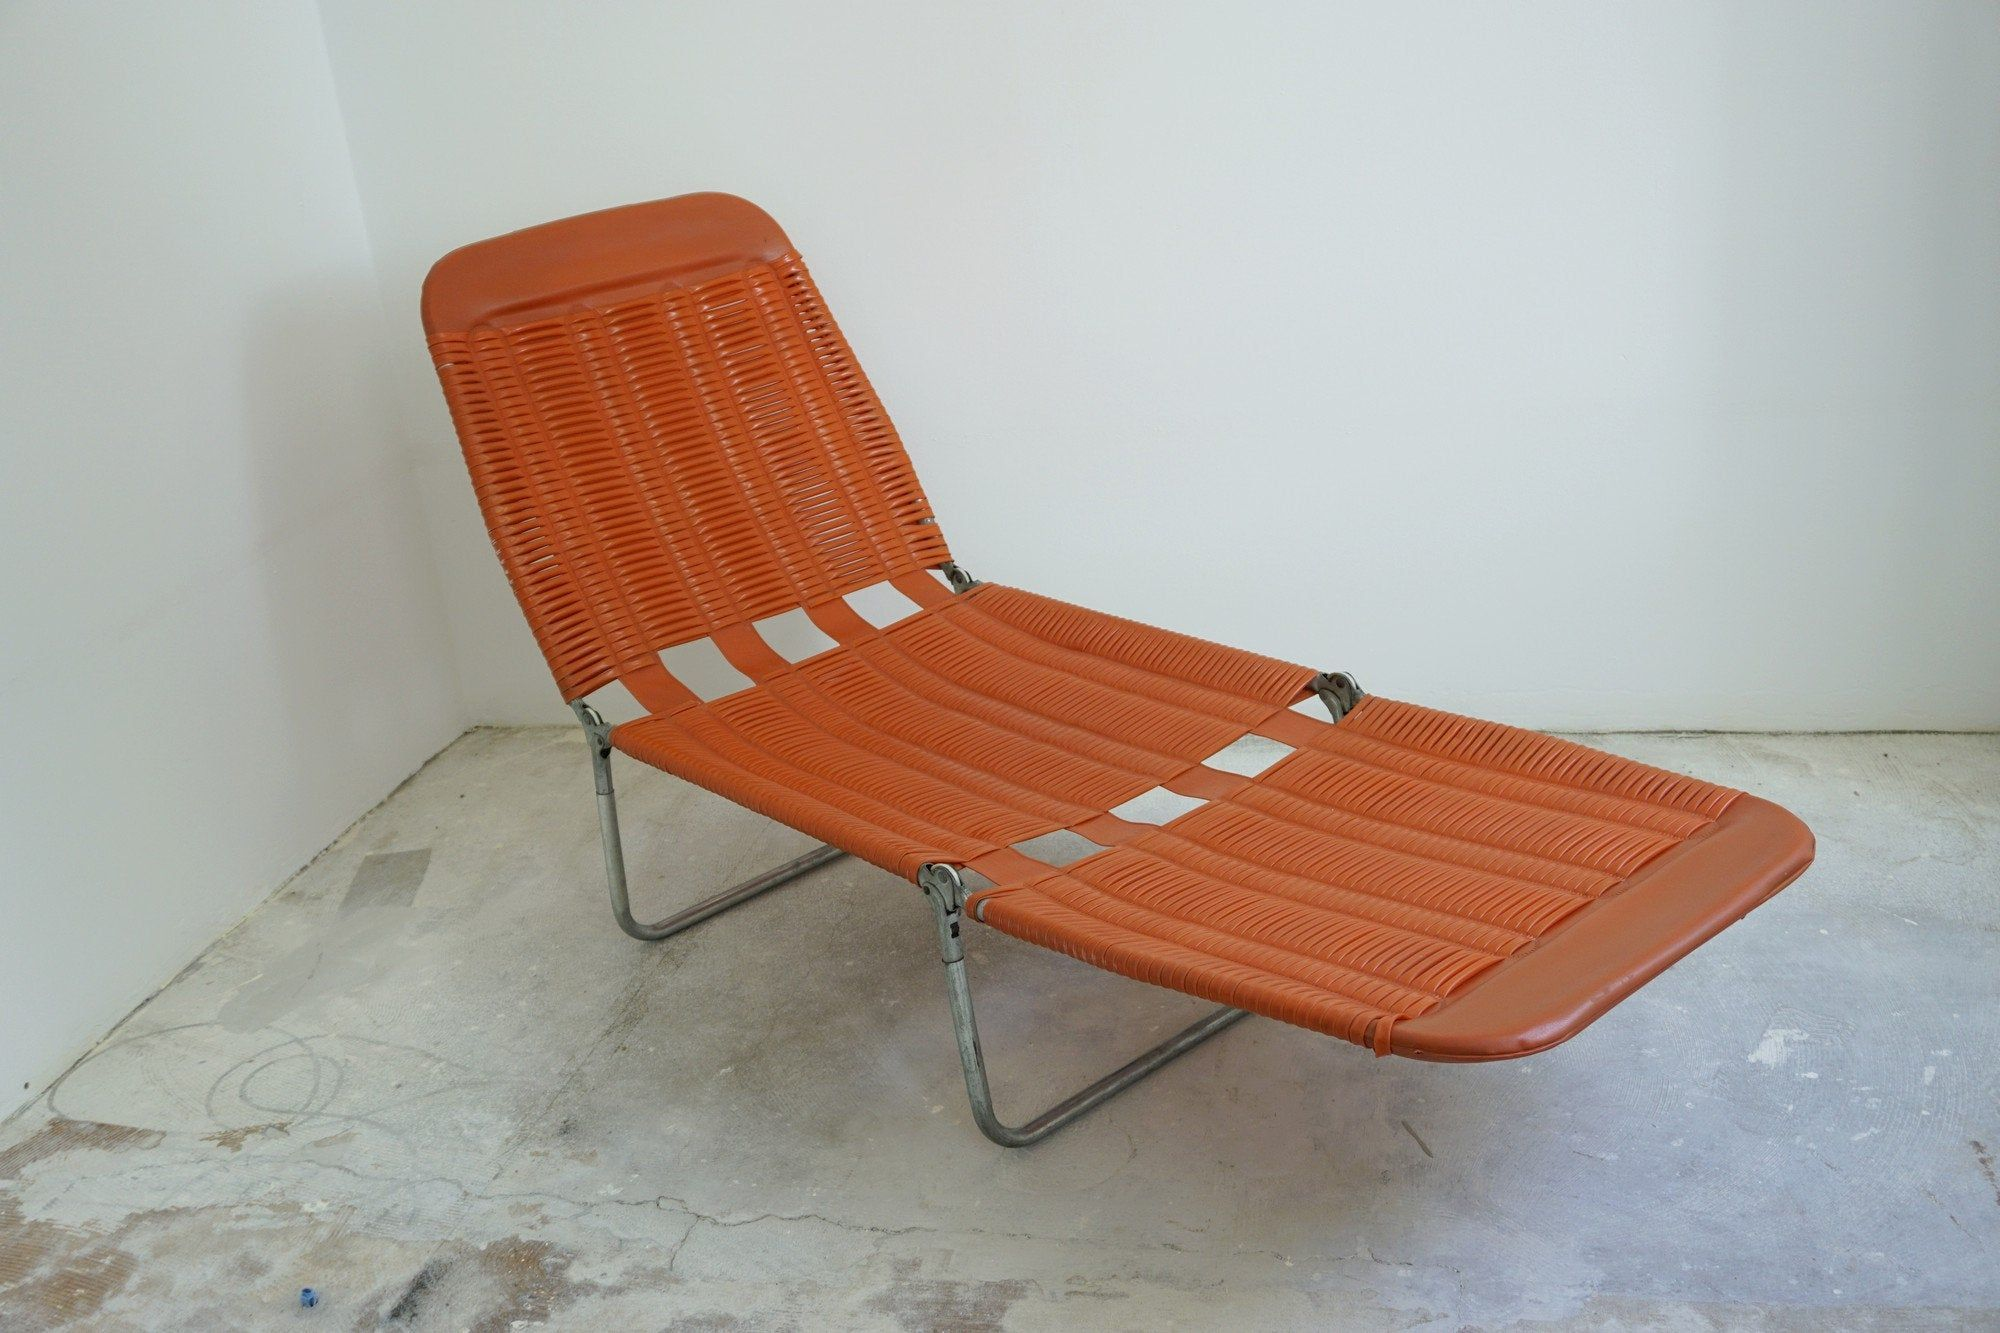 Vintage Folding Patio Chair Deck Chair Outdoor Sunbed